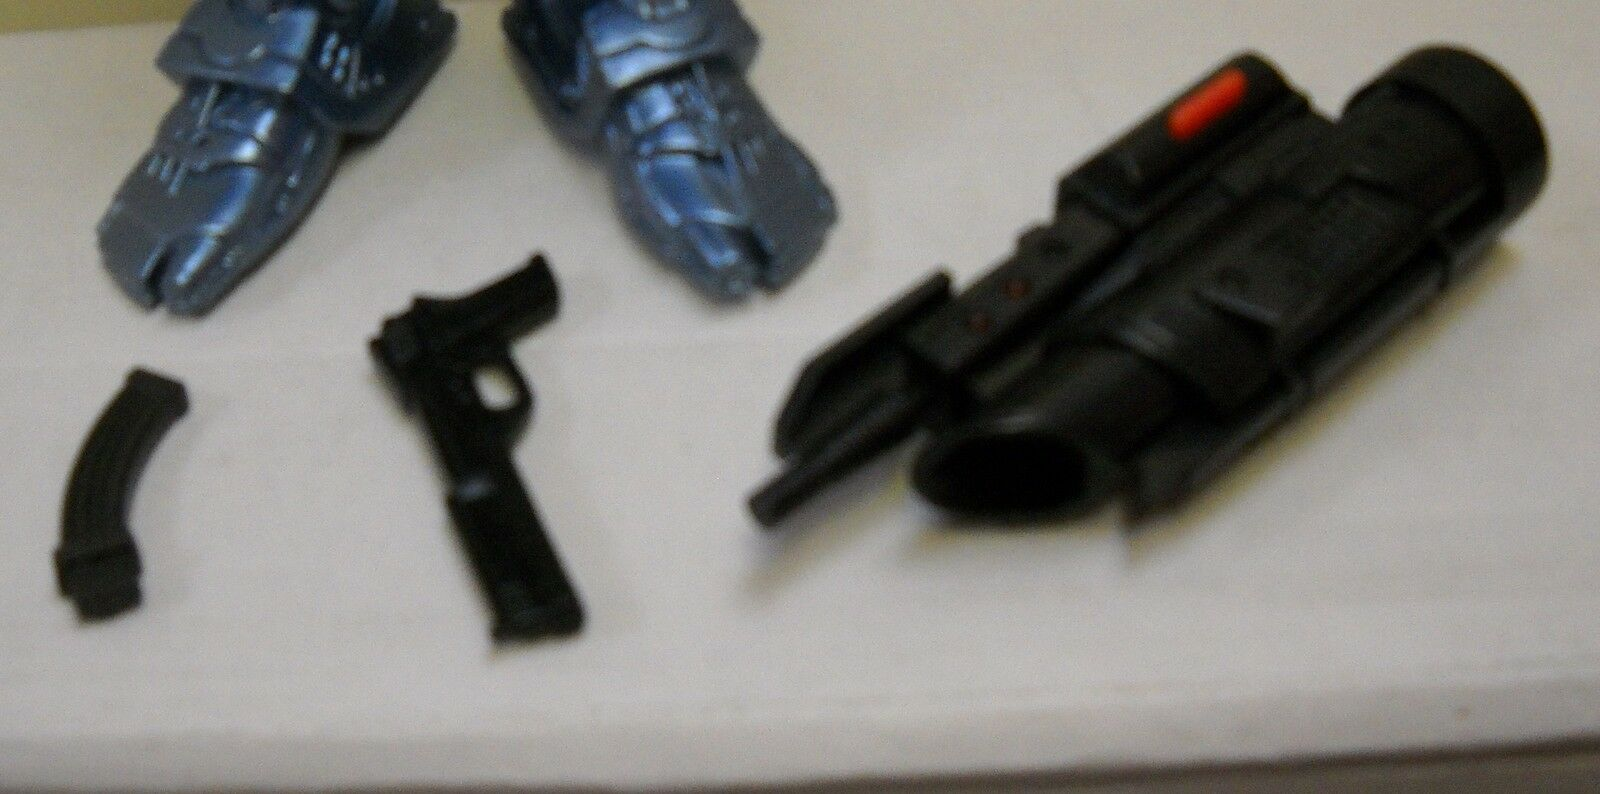 New in in in Catalog Box Audiotonic Talking Robocop 12  Figure with Weapons 968f48